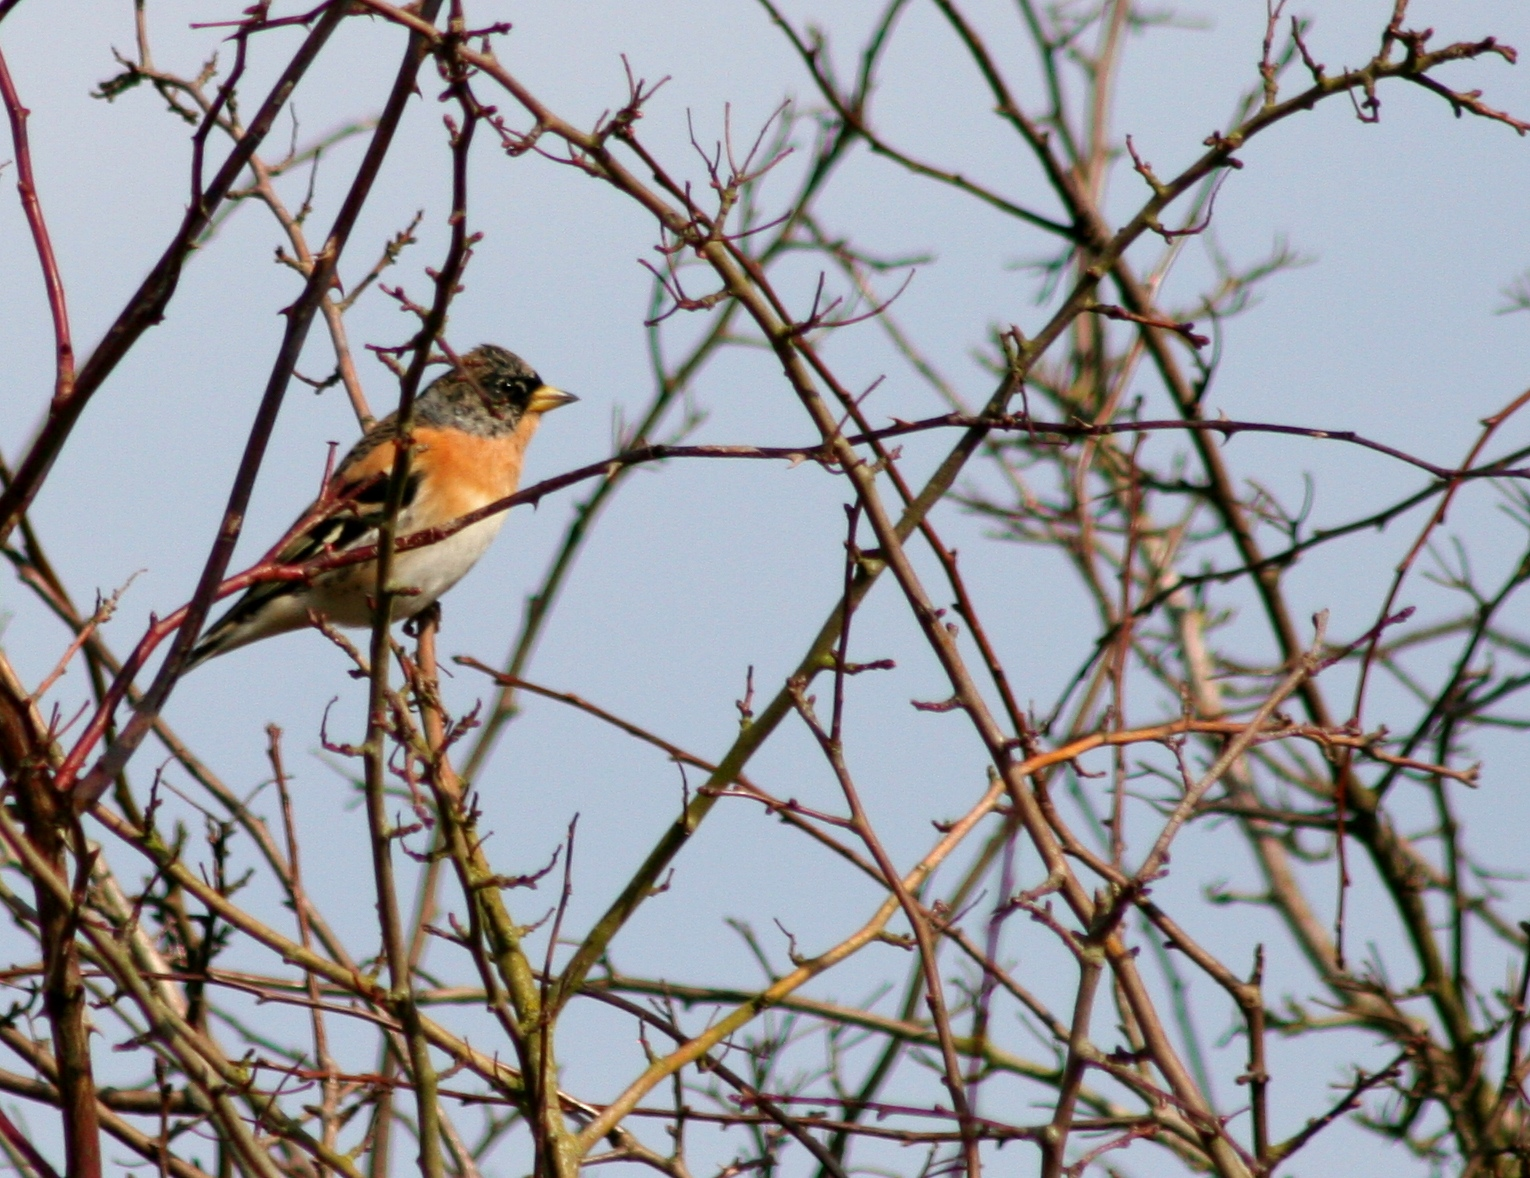 Brambling Rampton Spinney, Cambridgeshire early March 2013